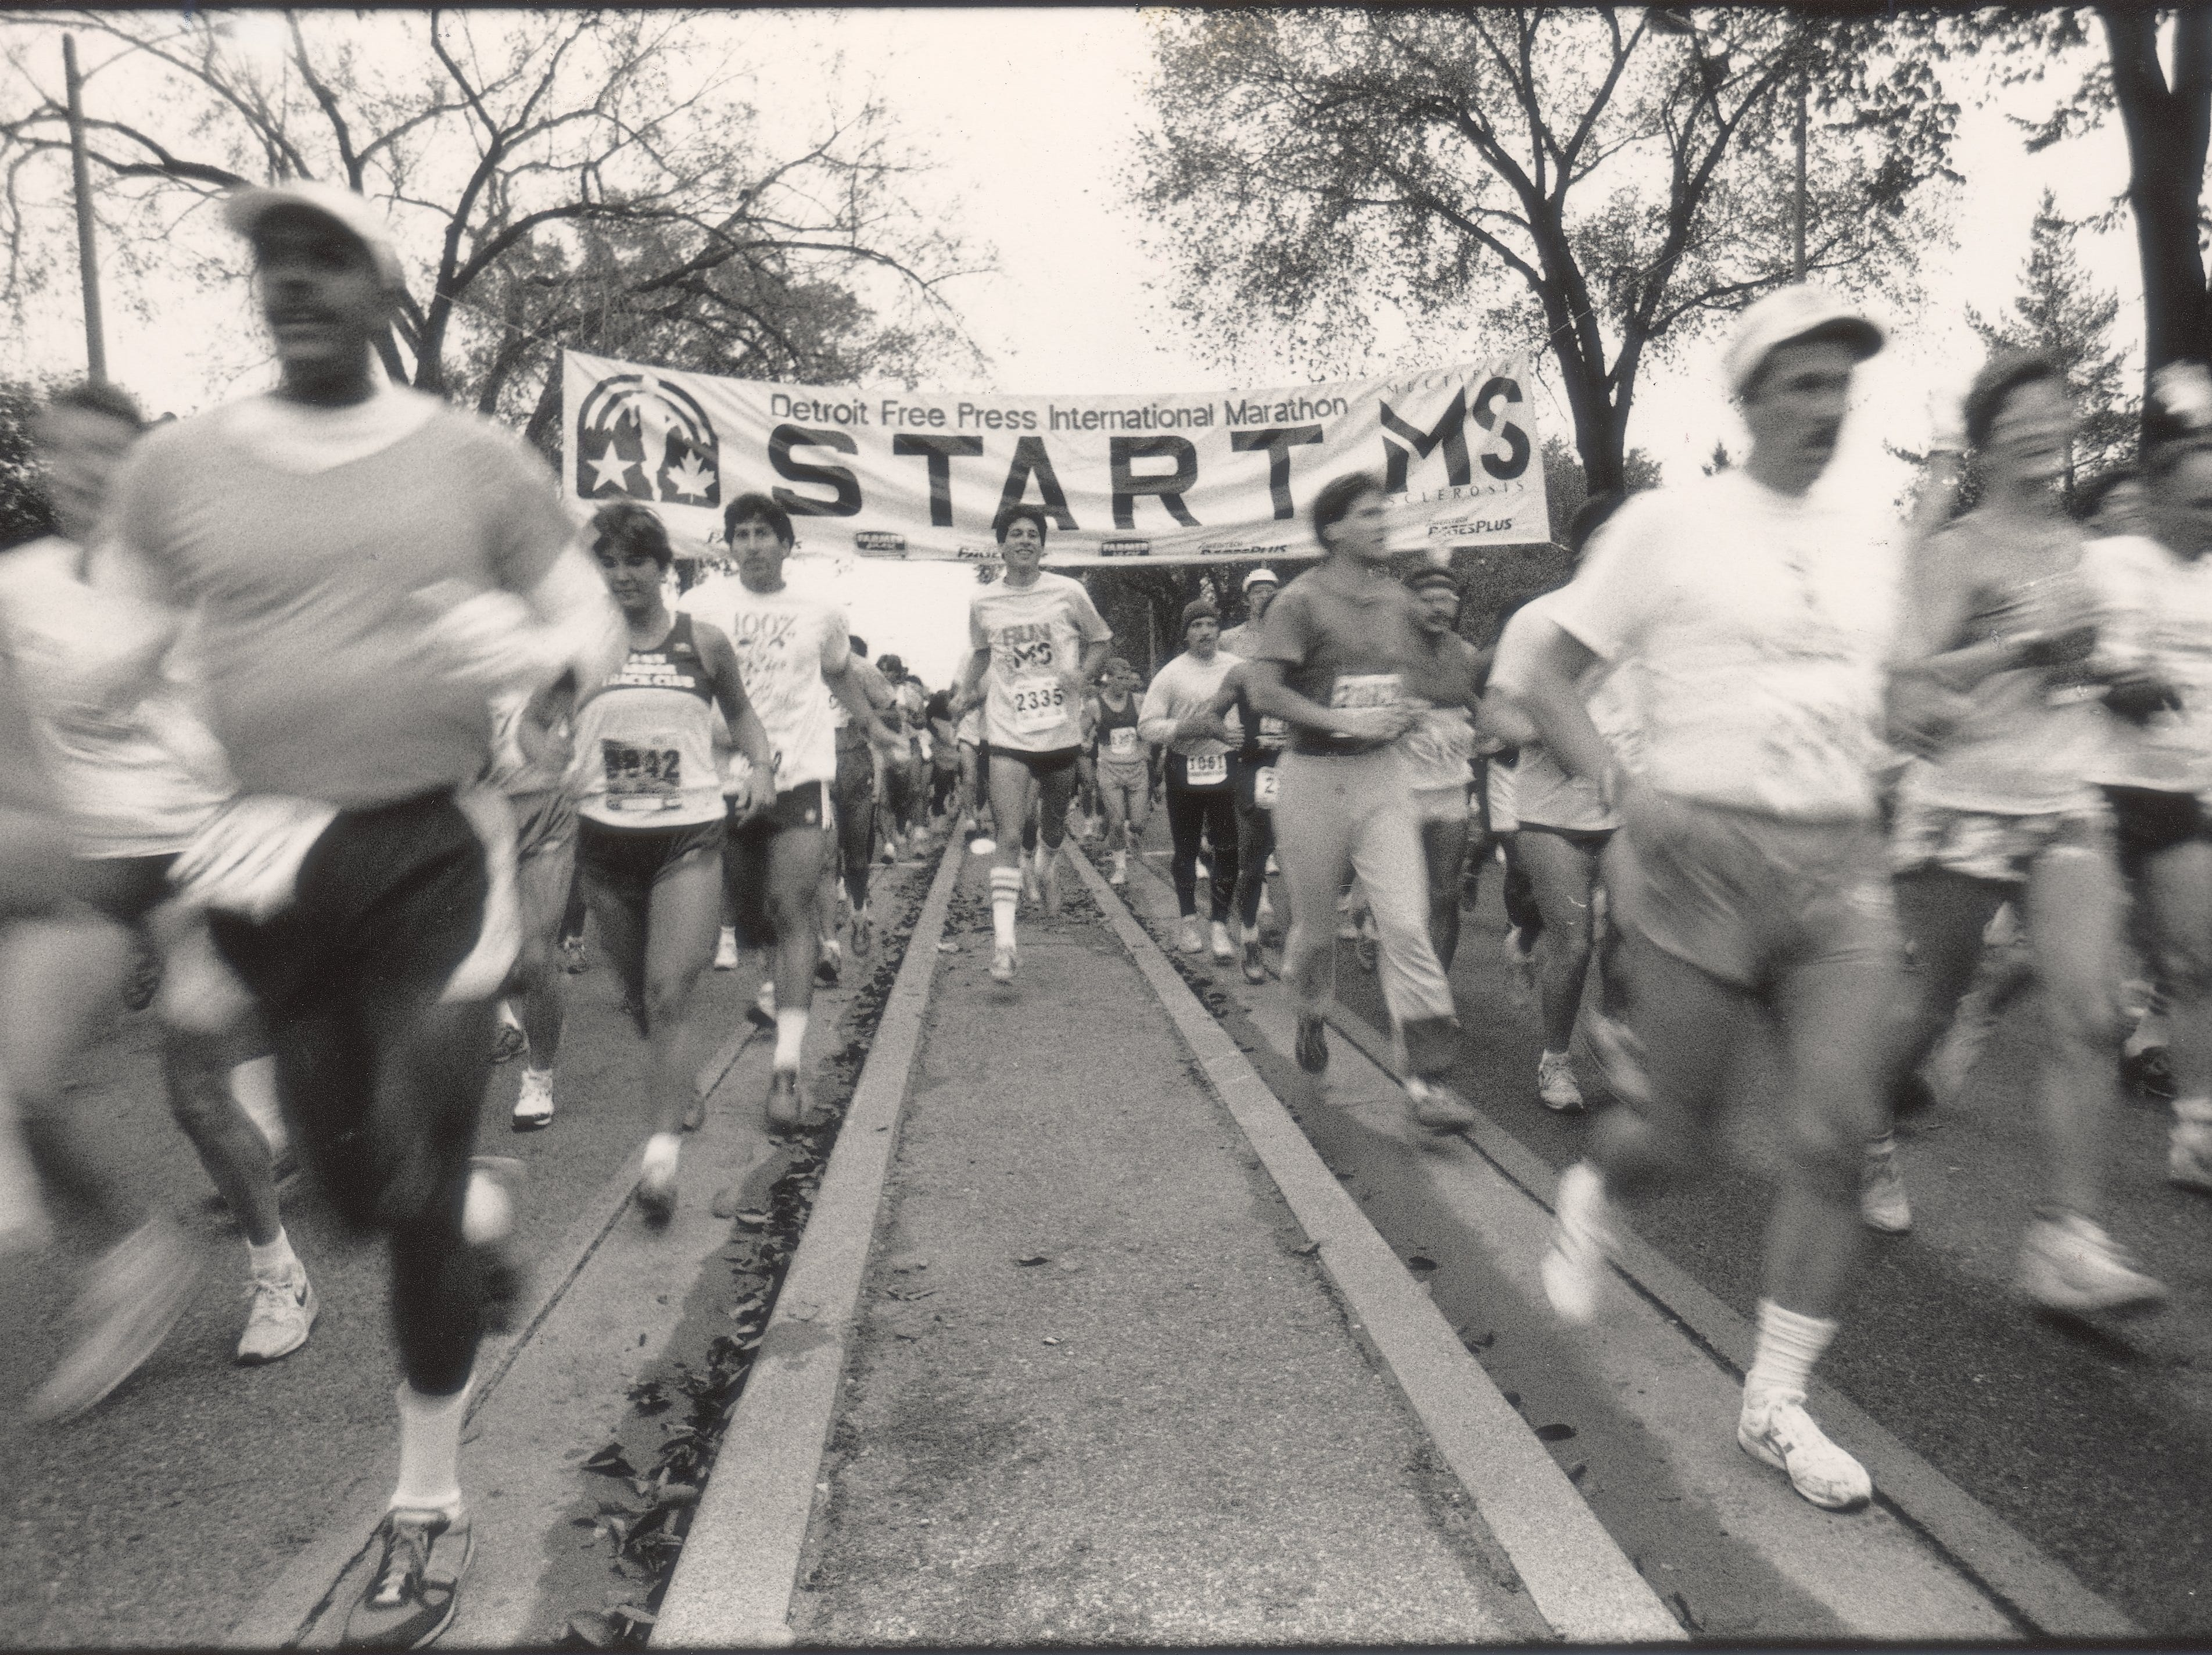 Runners take off from the starting line for the 1987 Free Press International Marathon.